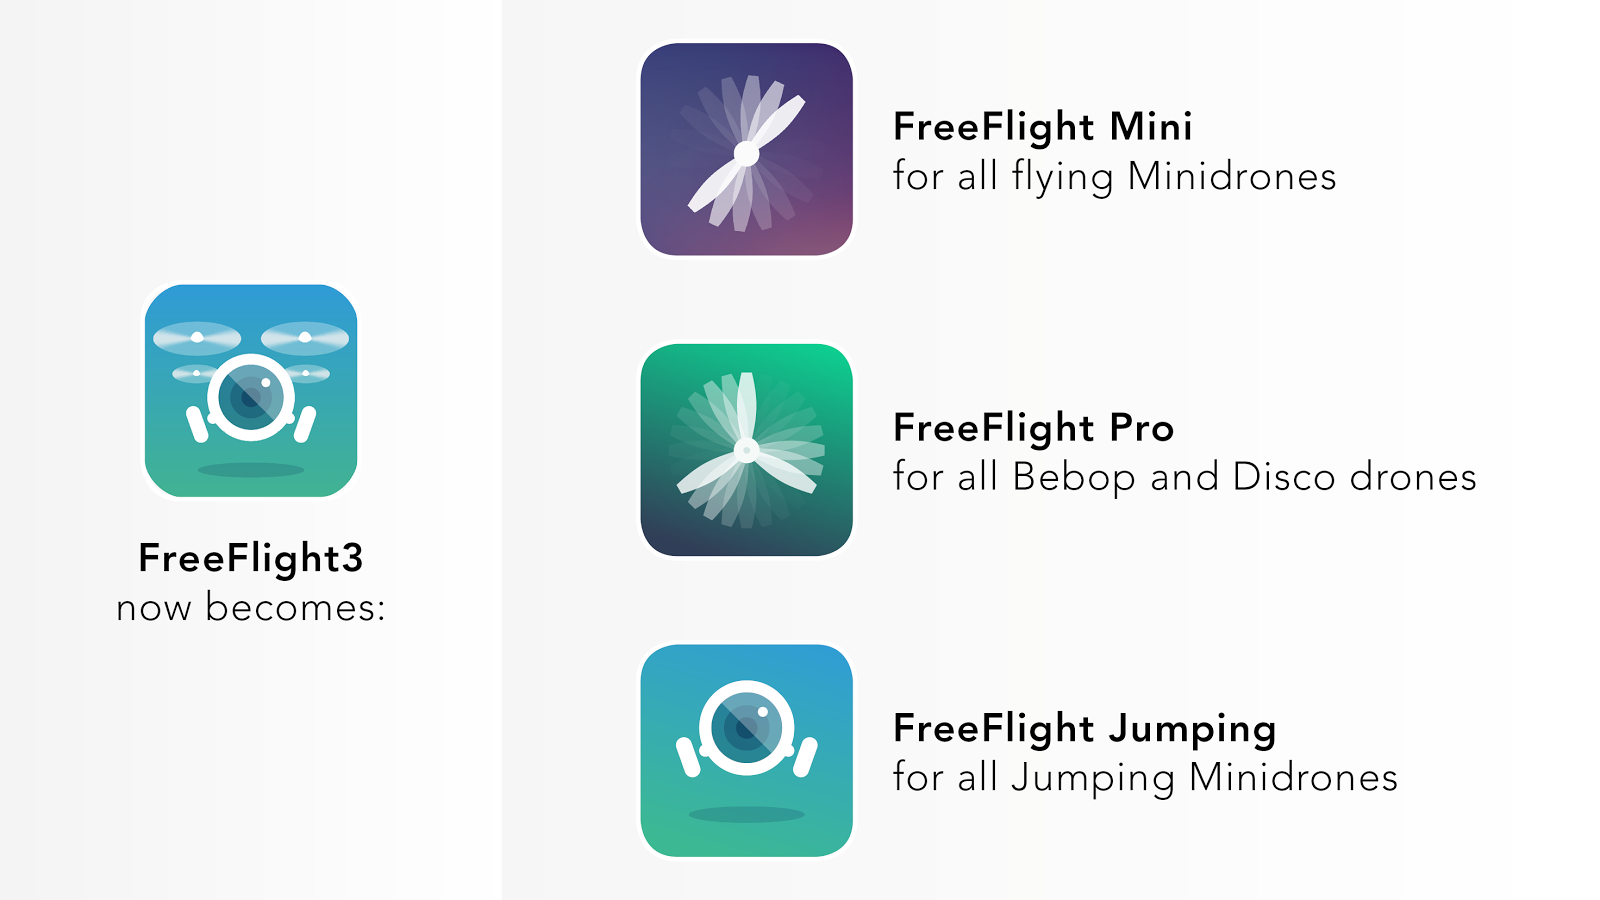 FreeFlight Mini: captura de pantalla